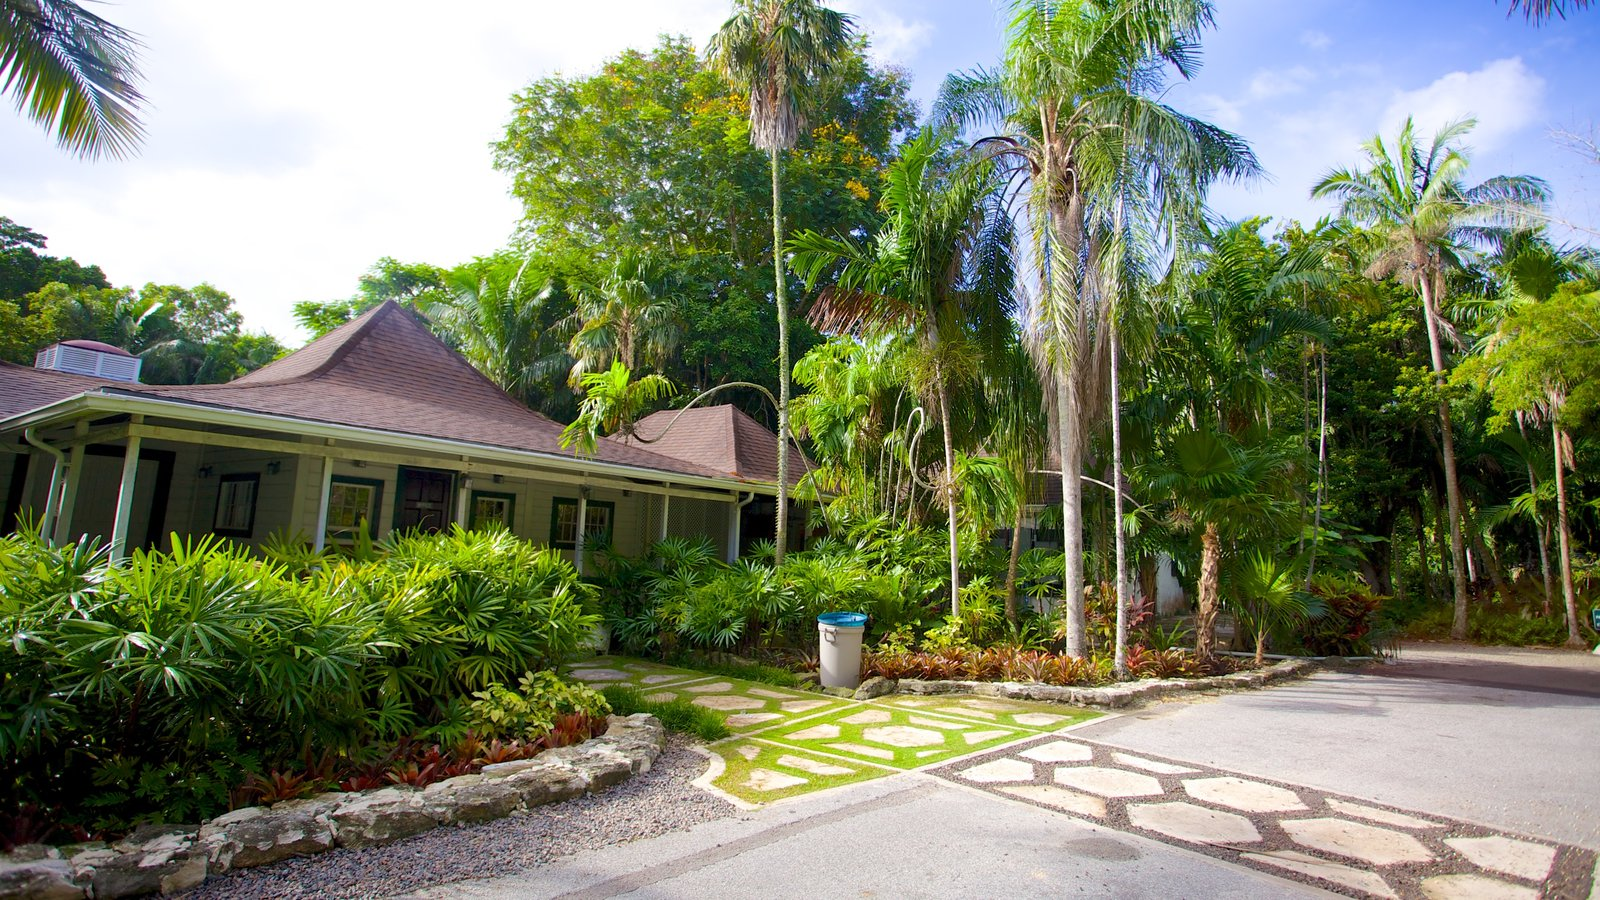 Delightful The Retreat Garden National Park Featuring A Garden, A House And Tropical  Scenes